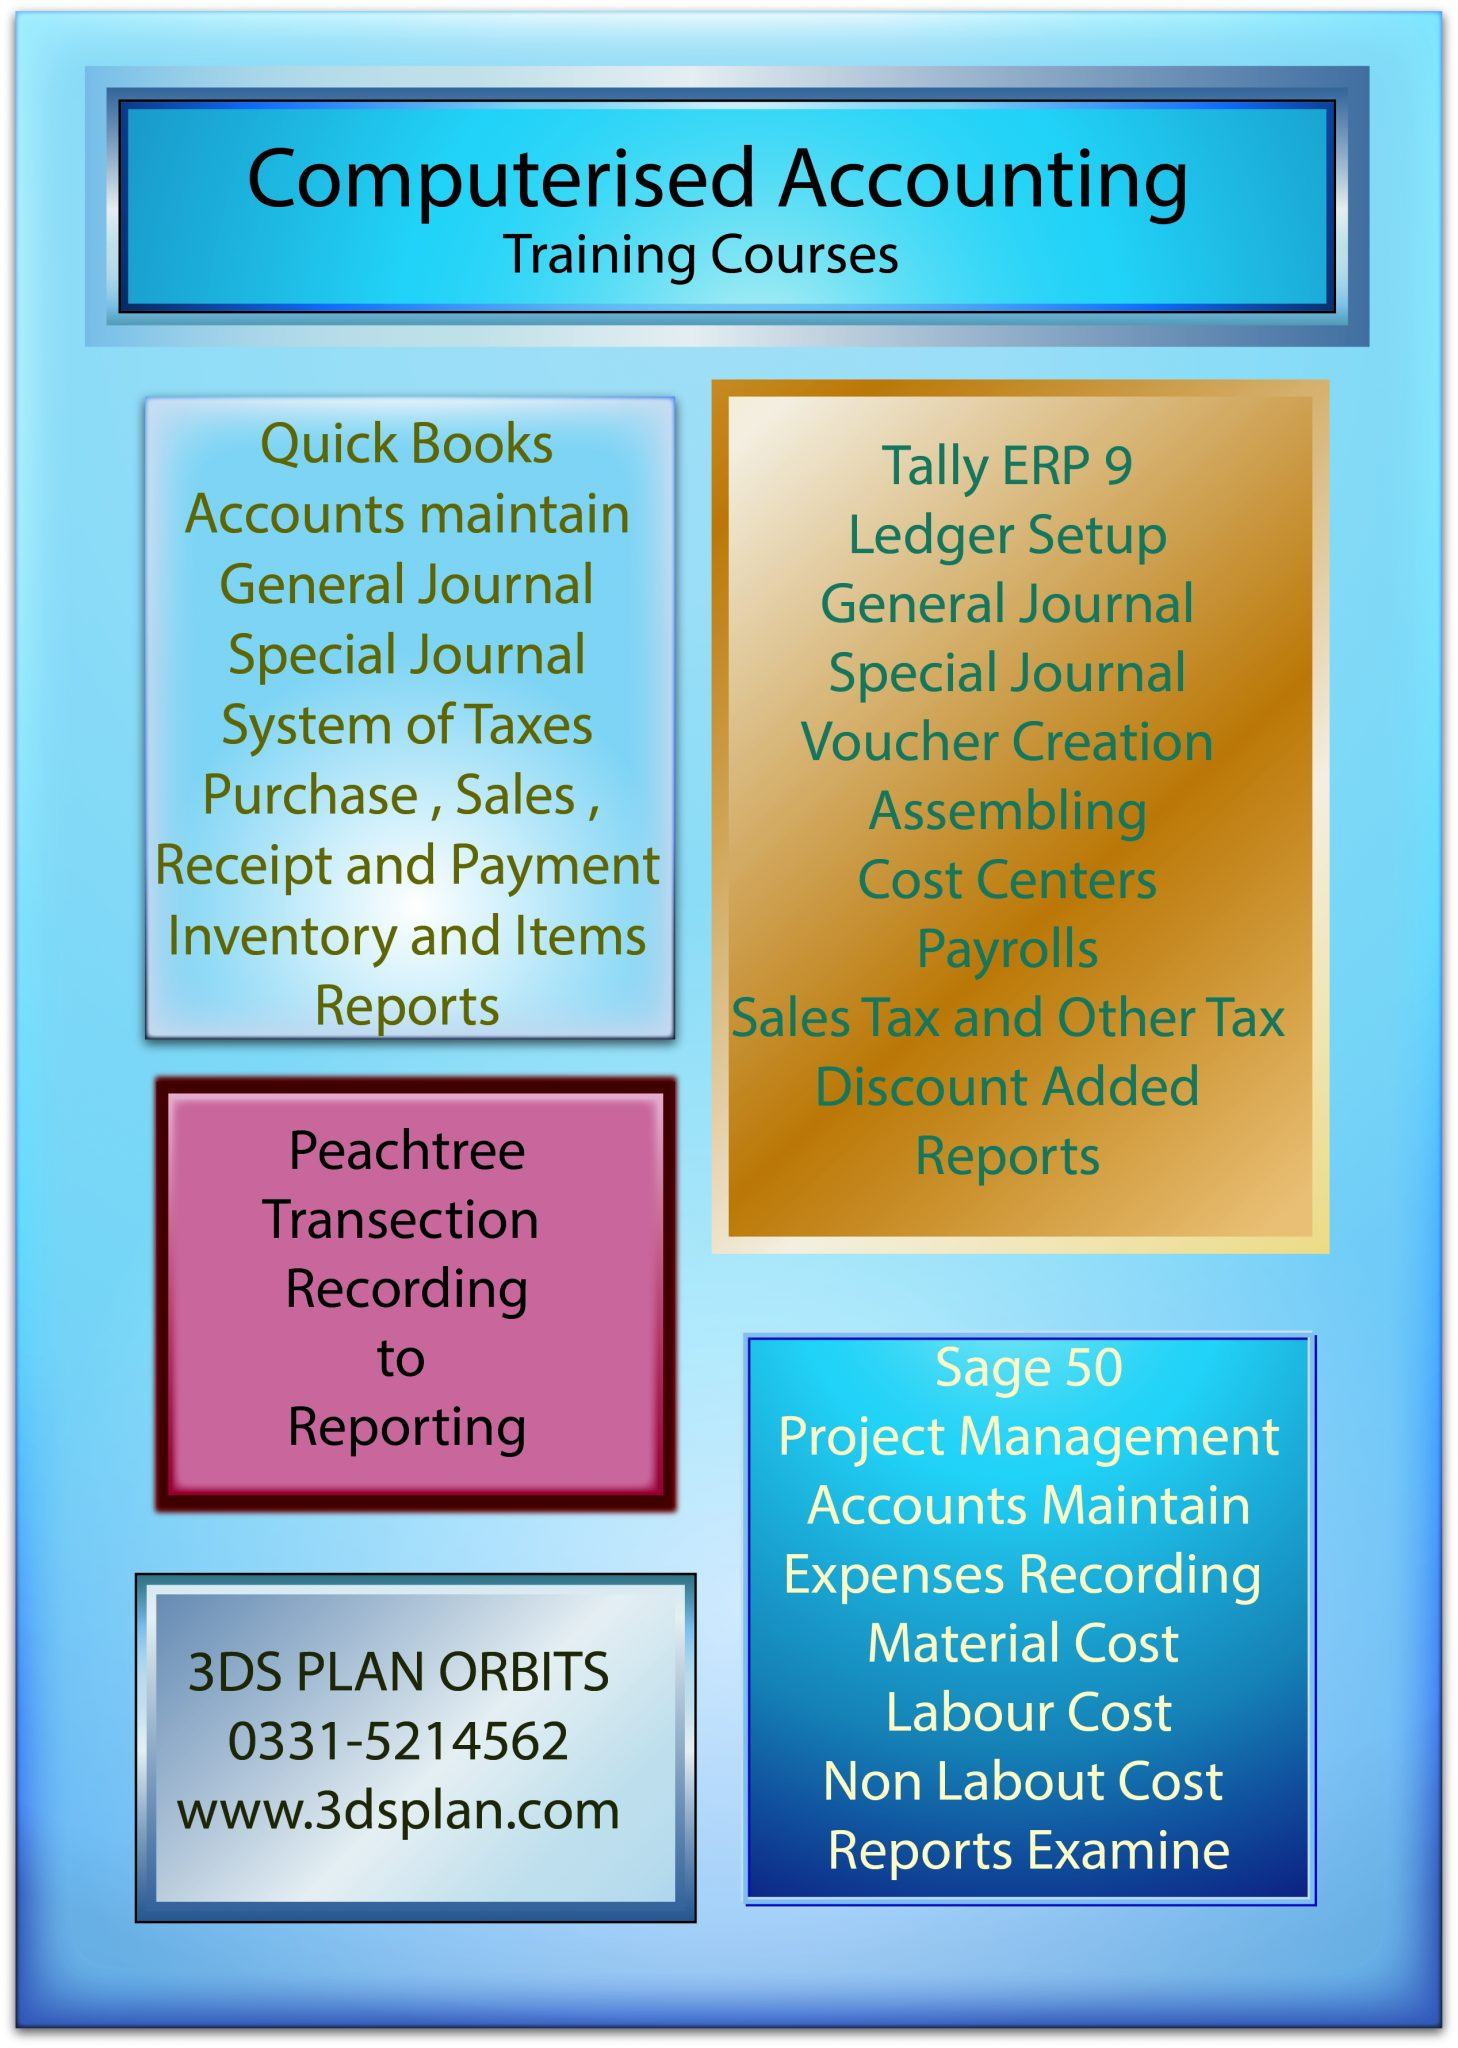 Peachtree,Quickbooks,Tally,Sage Course